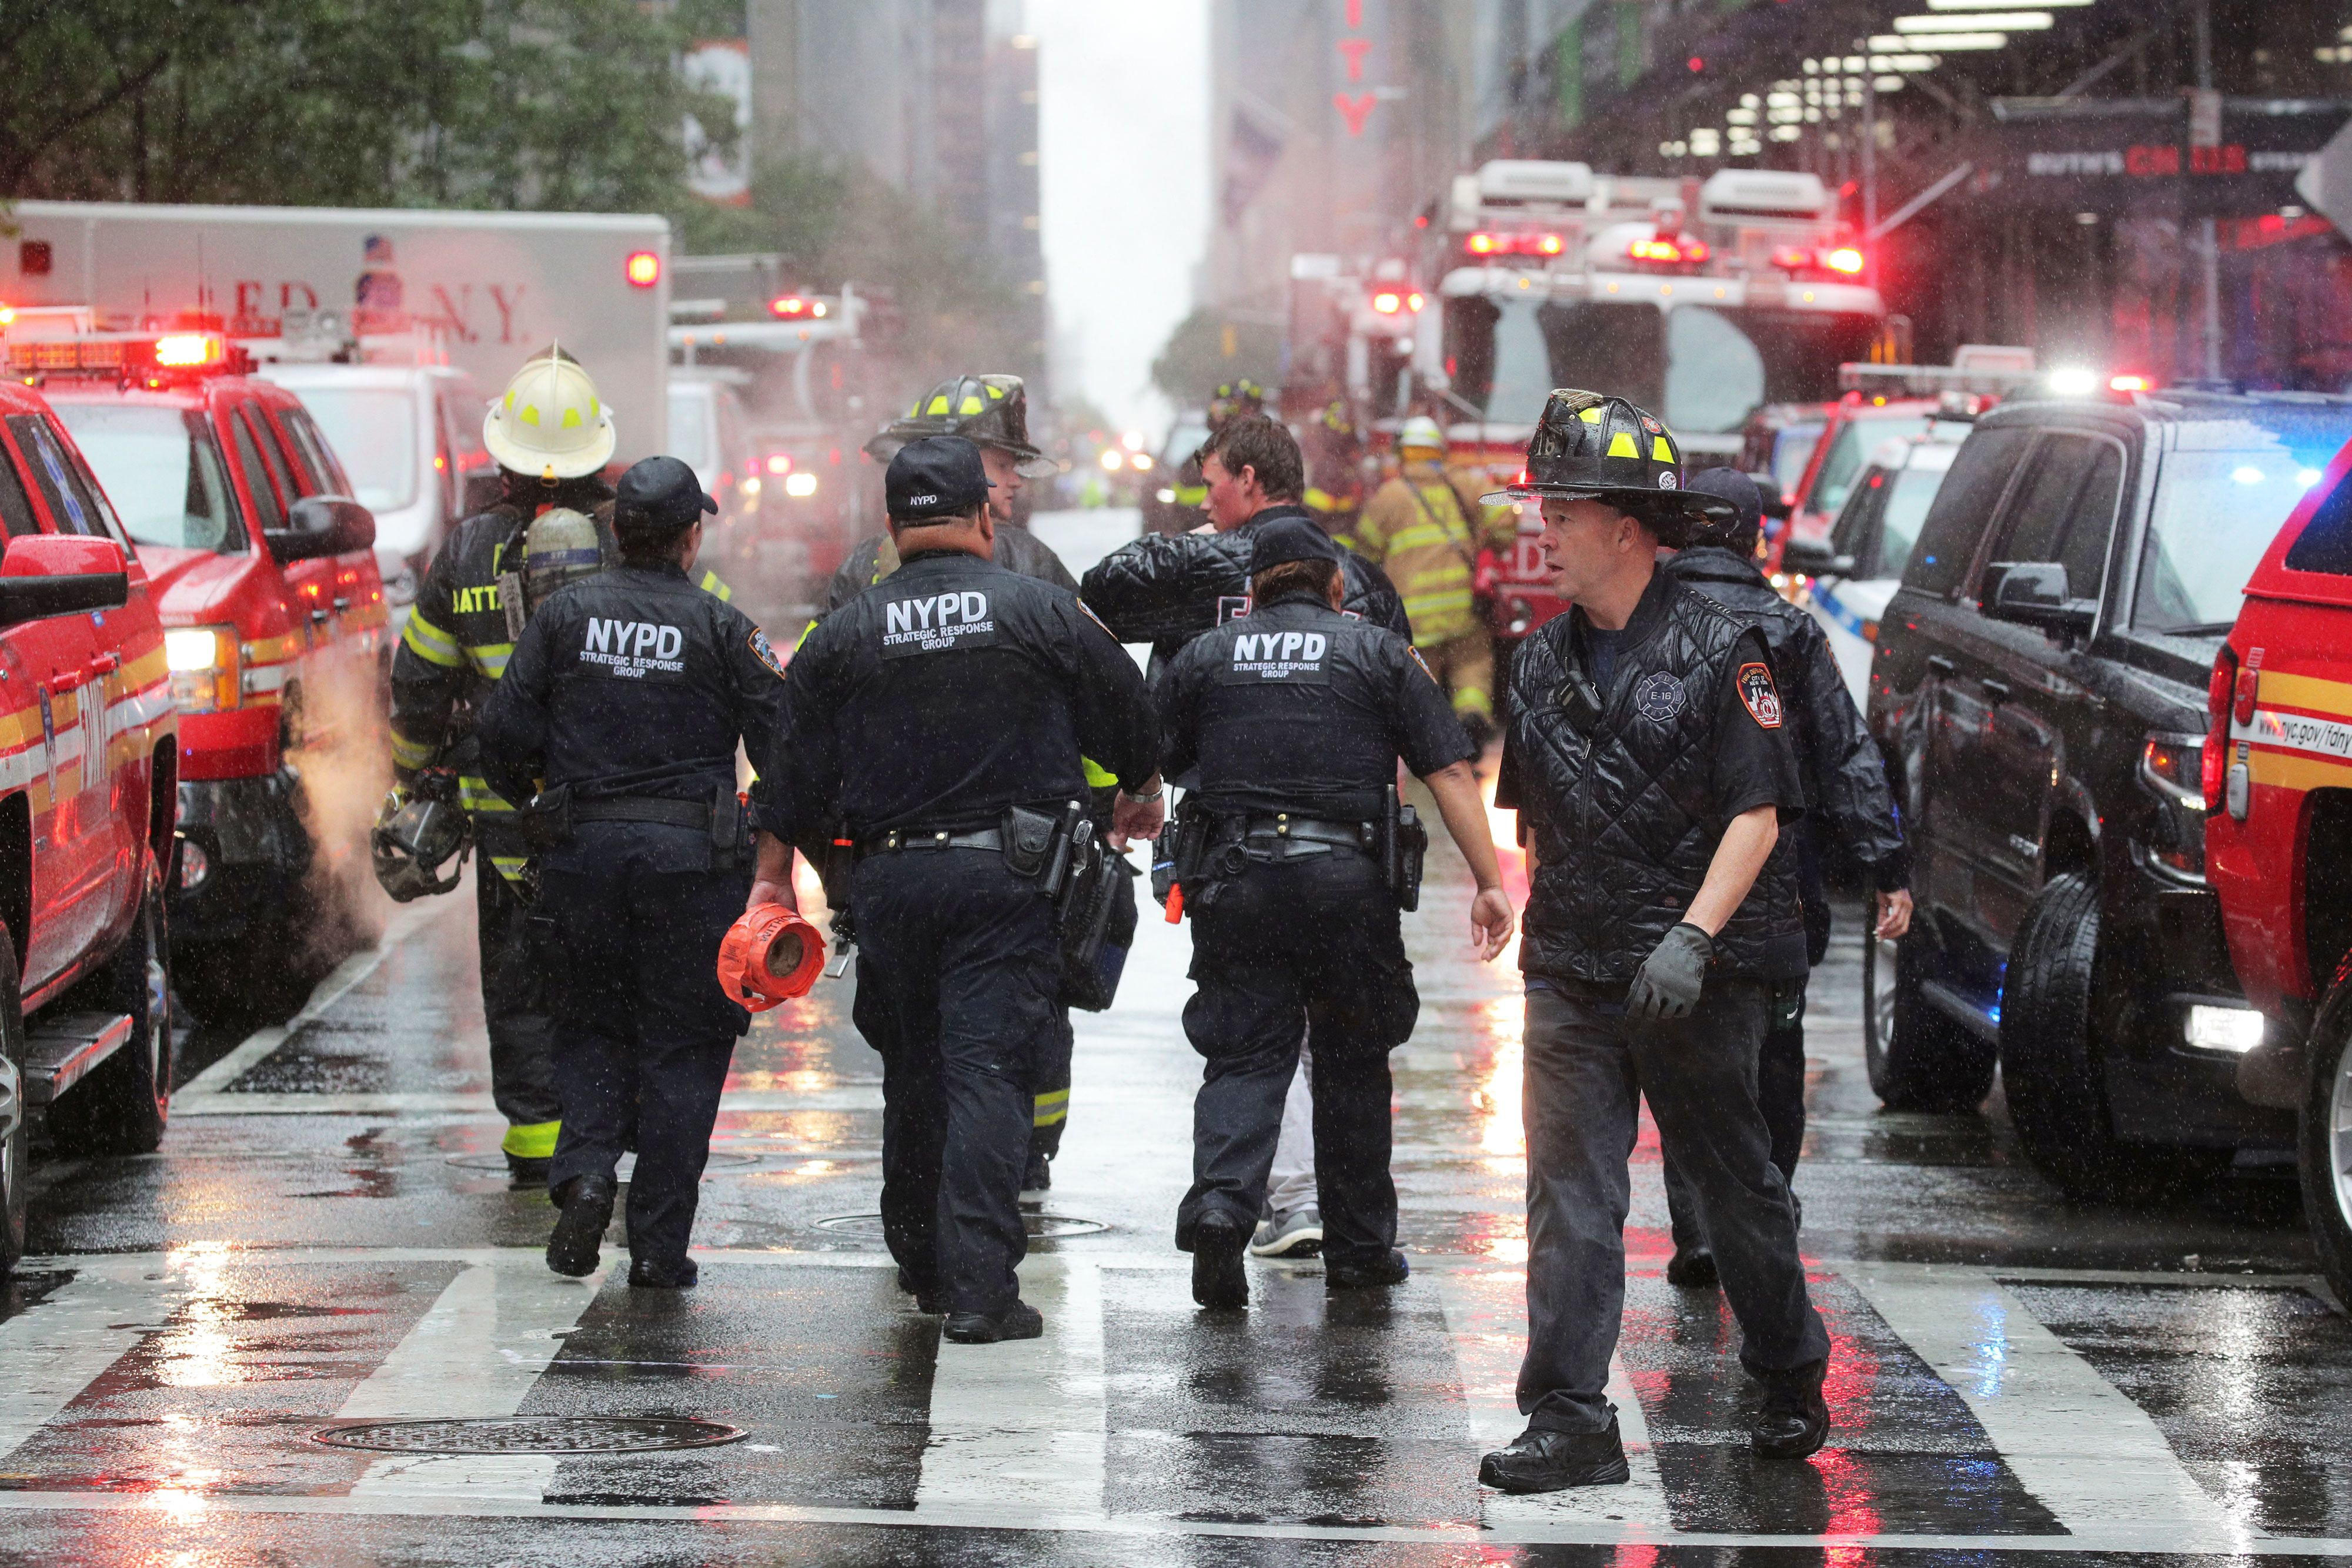 Helicopter crashes into building in midtown Manhattan